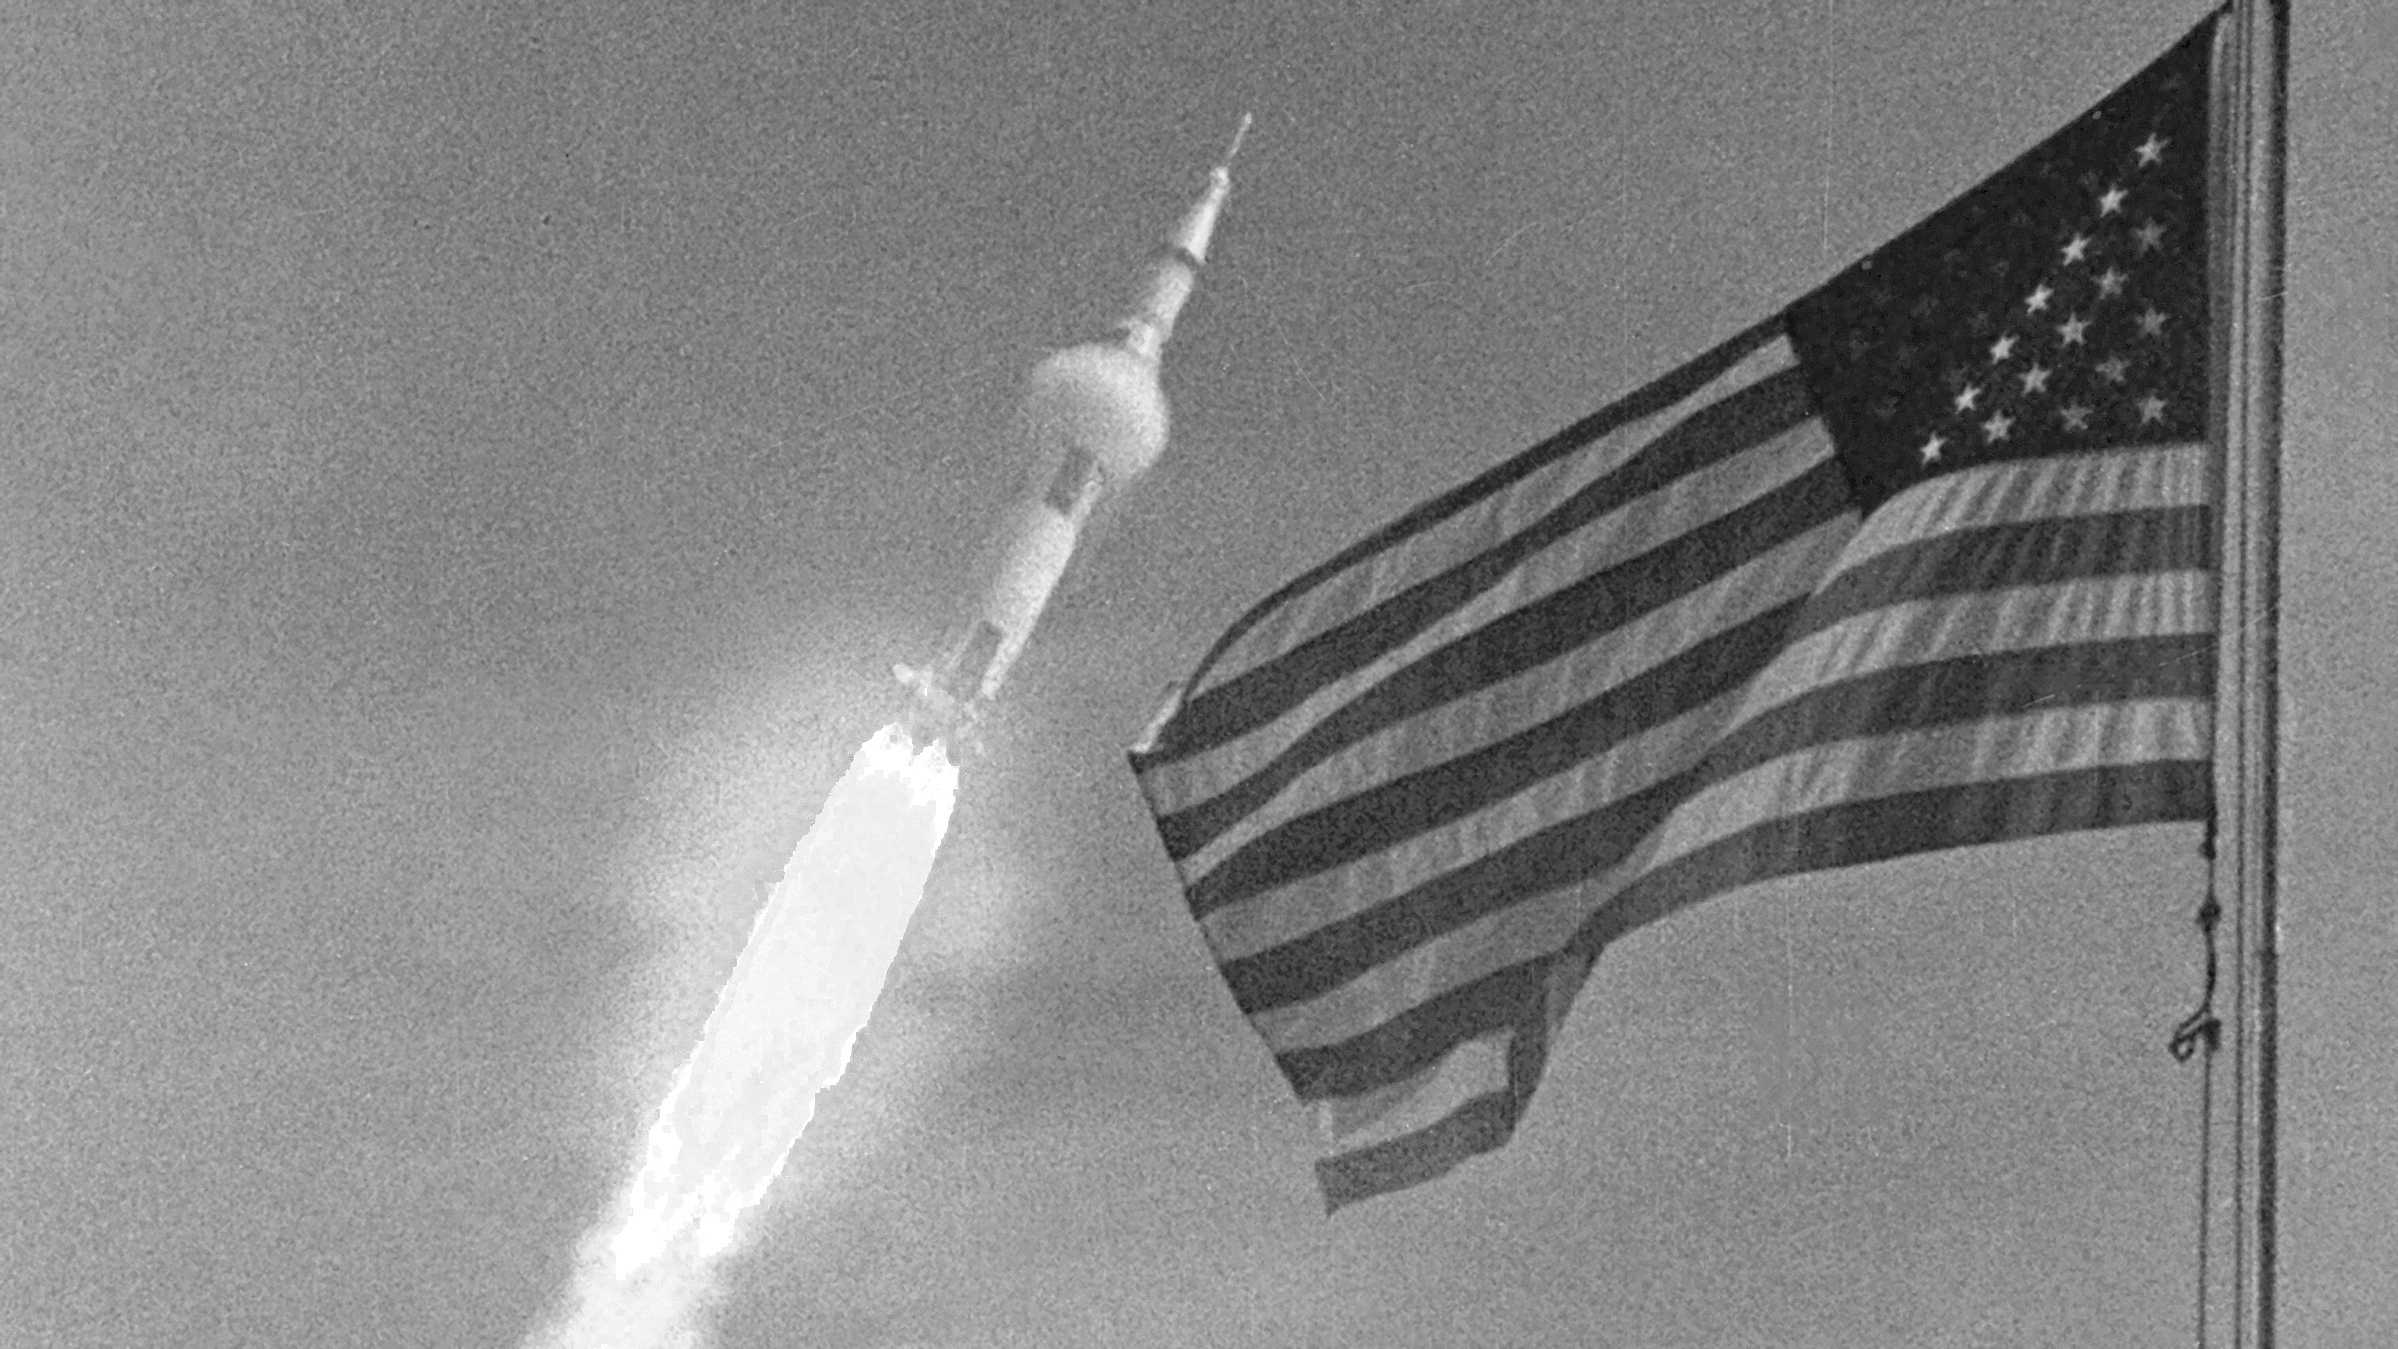 Apollo-11-Rakete beim Start nebst US-Flagge